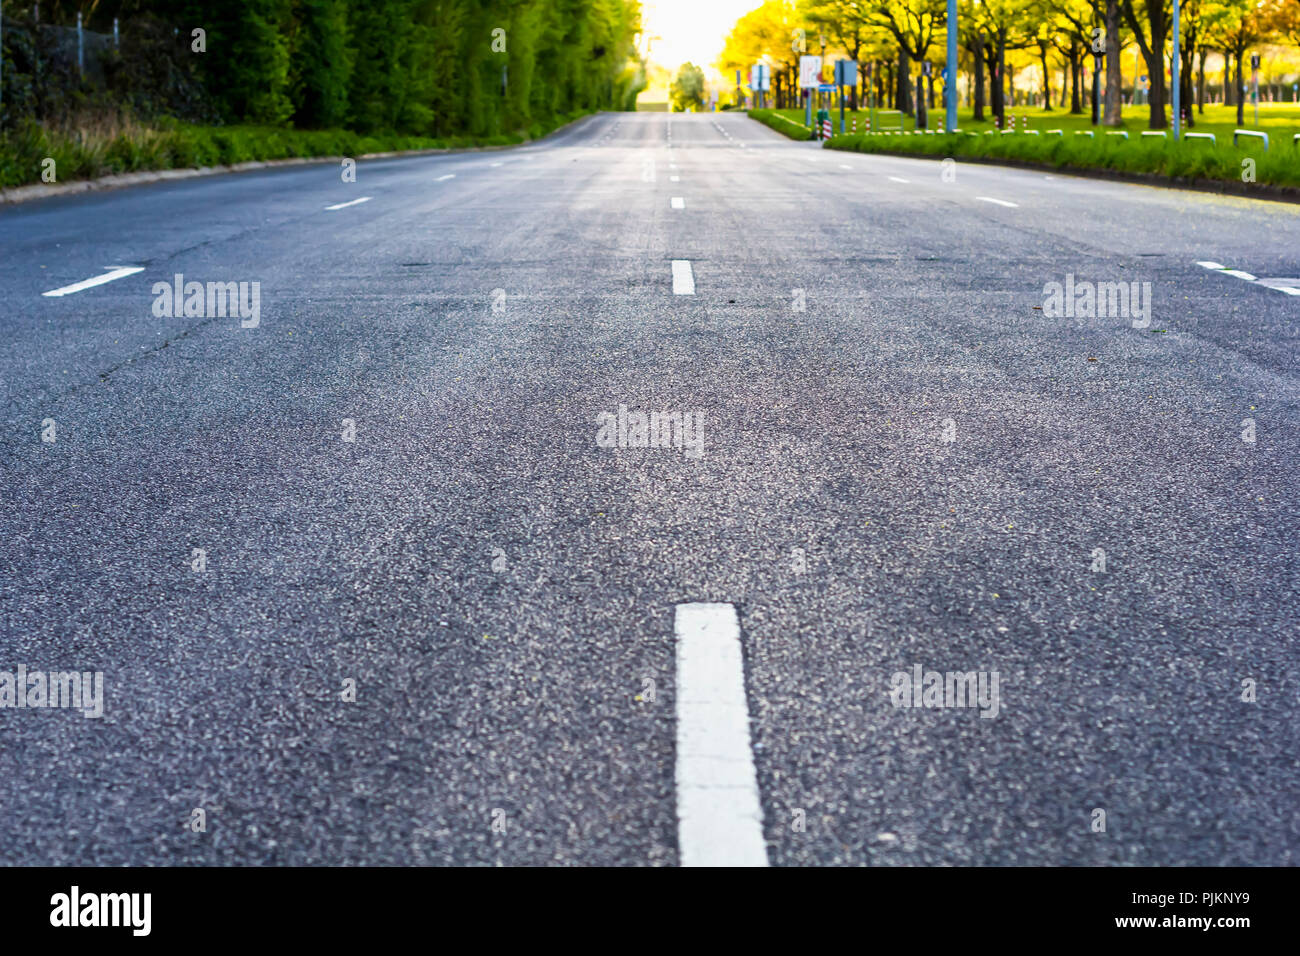 A four-lane road leading to the horizon, Stock Photo